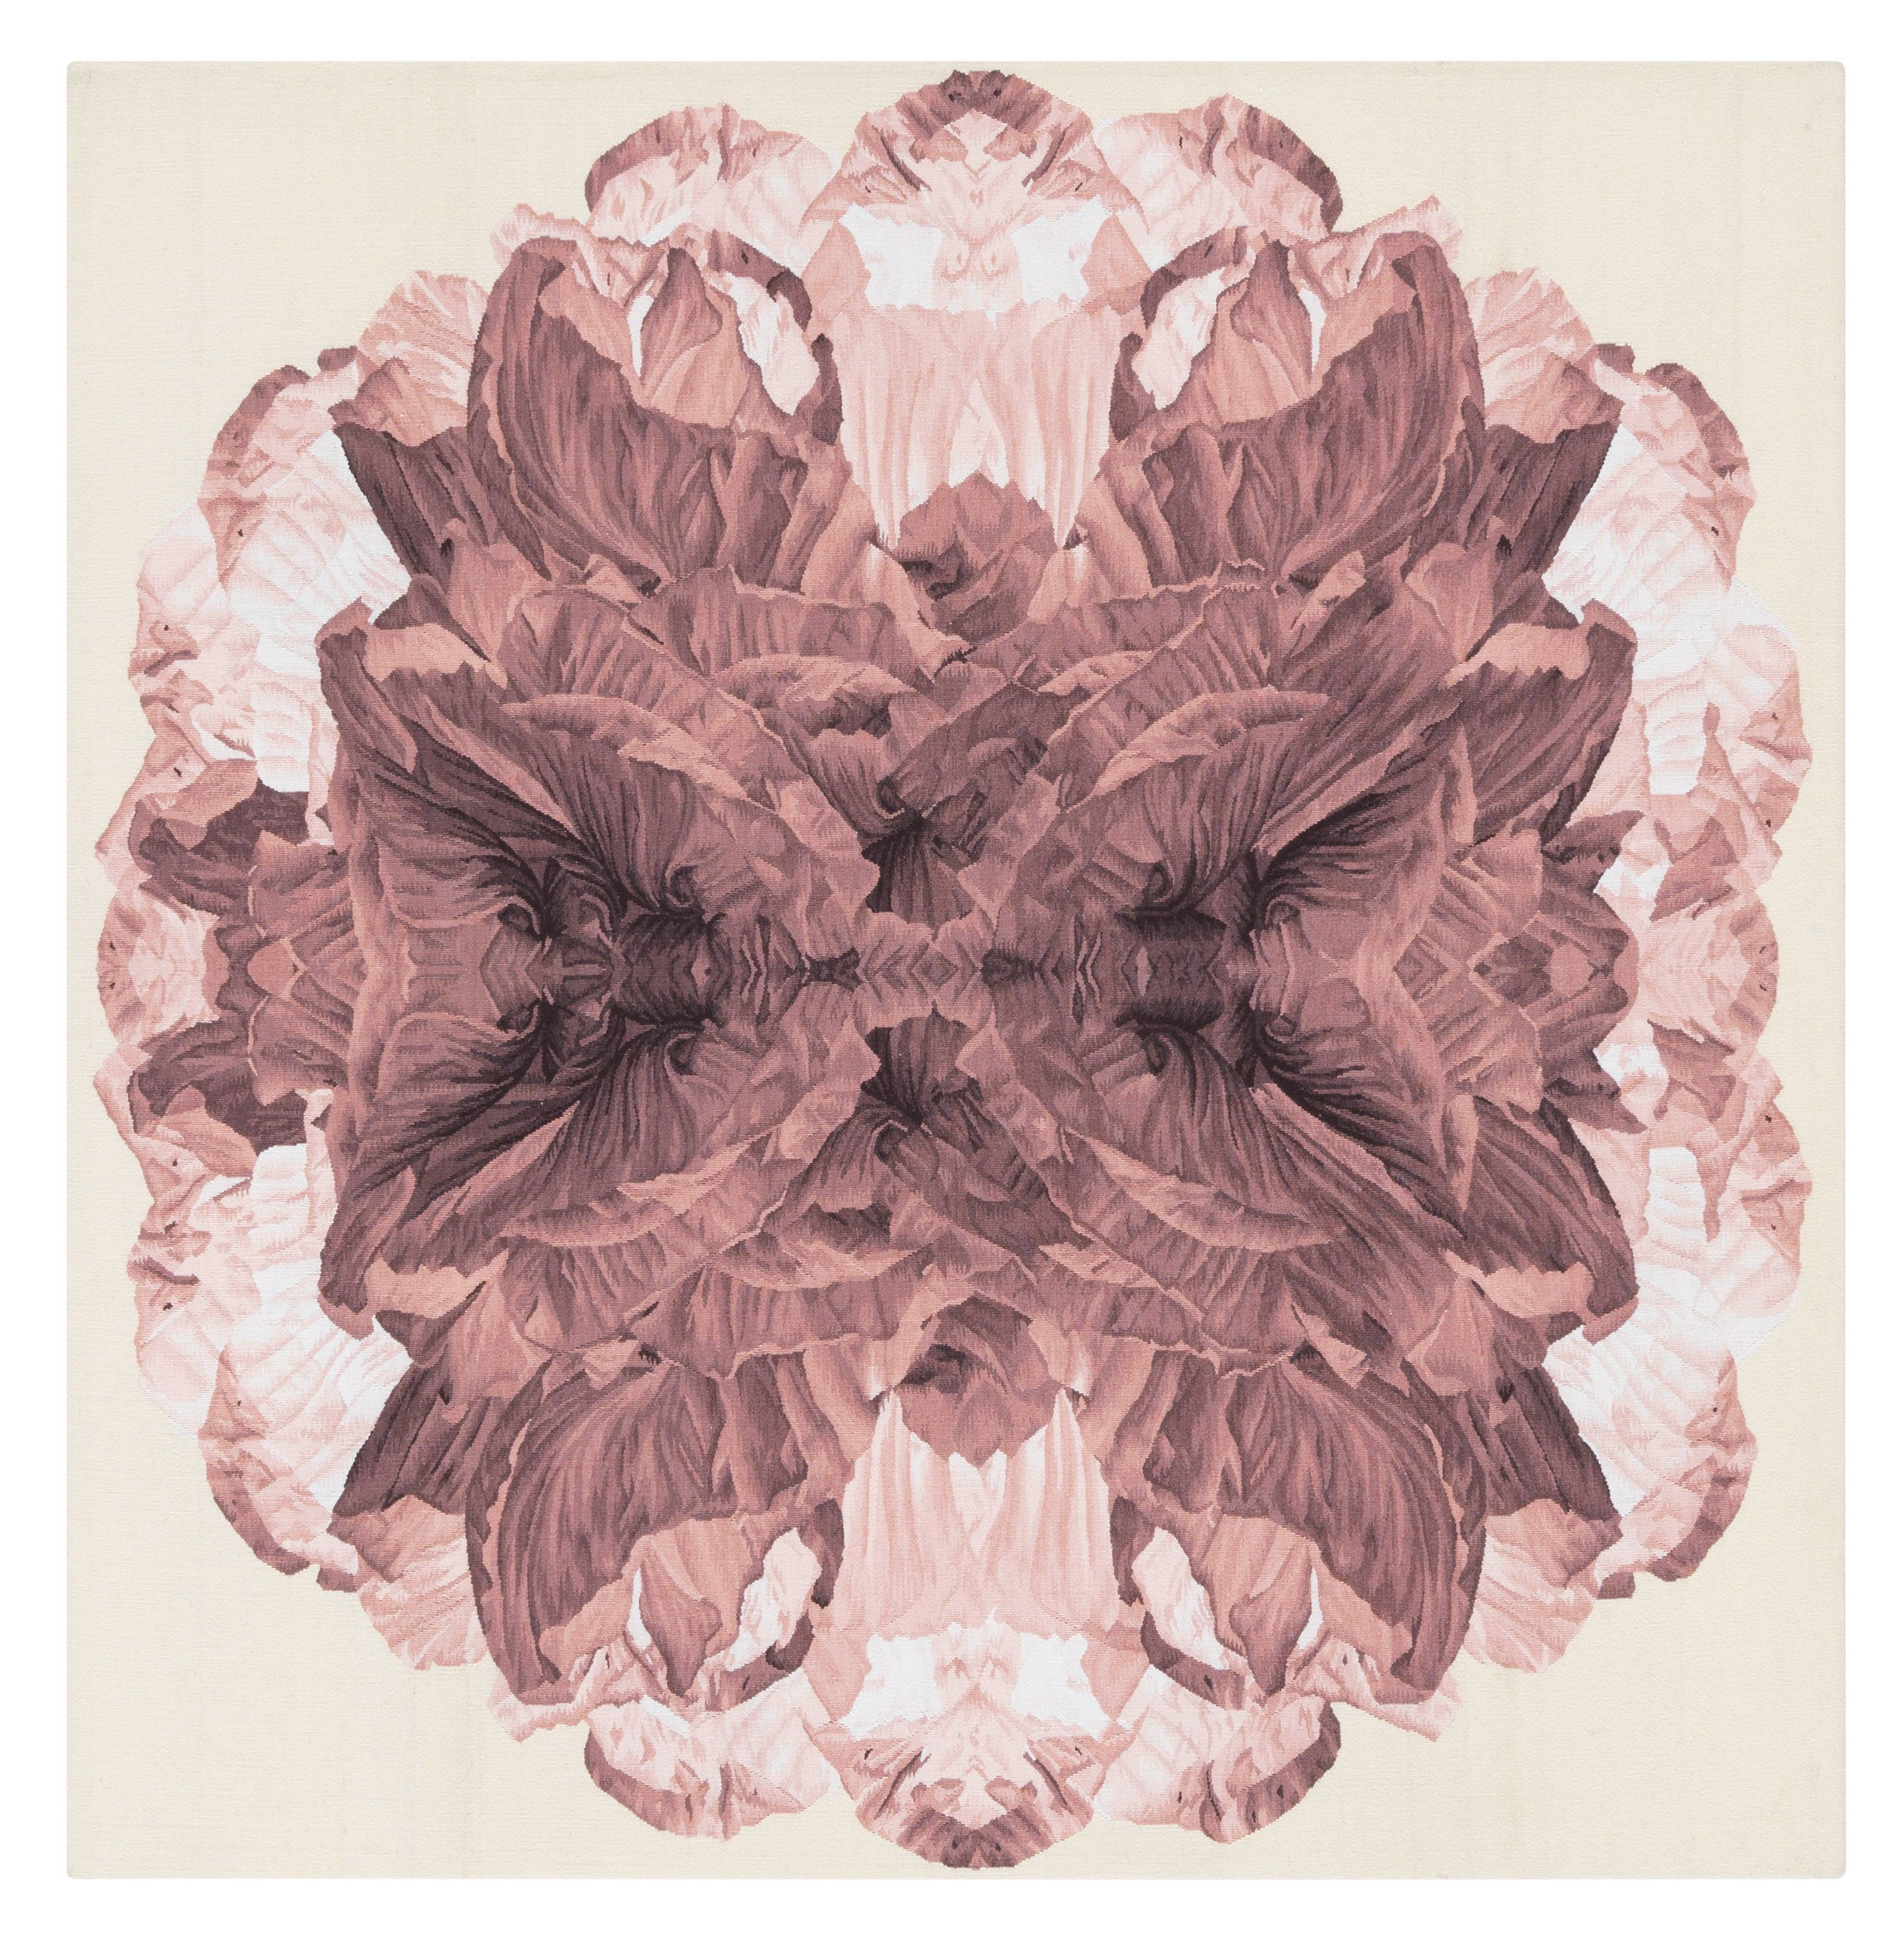 Poppy Day By Alexander Mcqueen For The Rug Company Rug